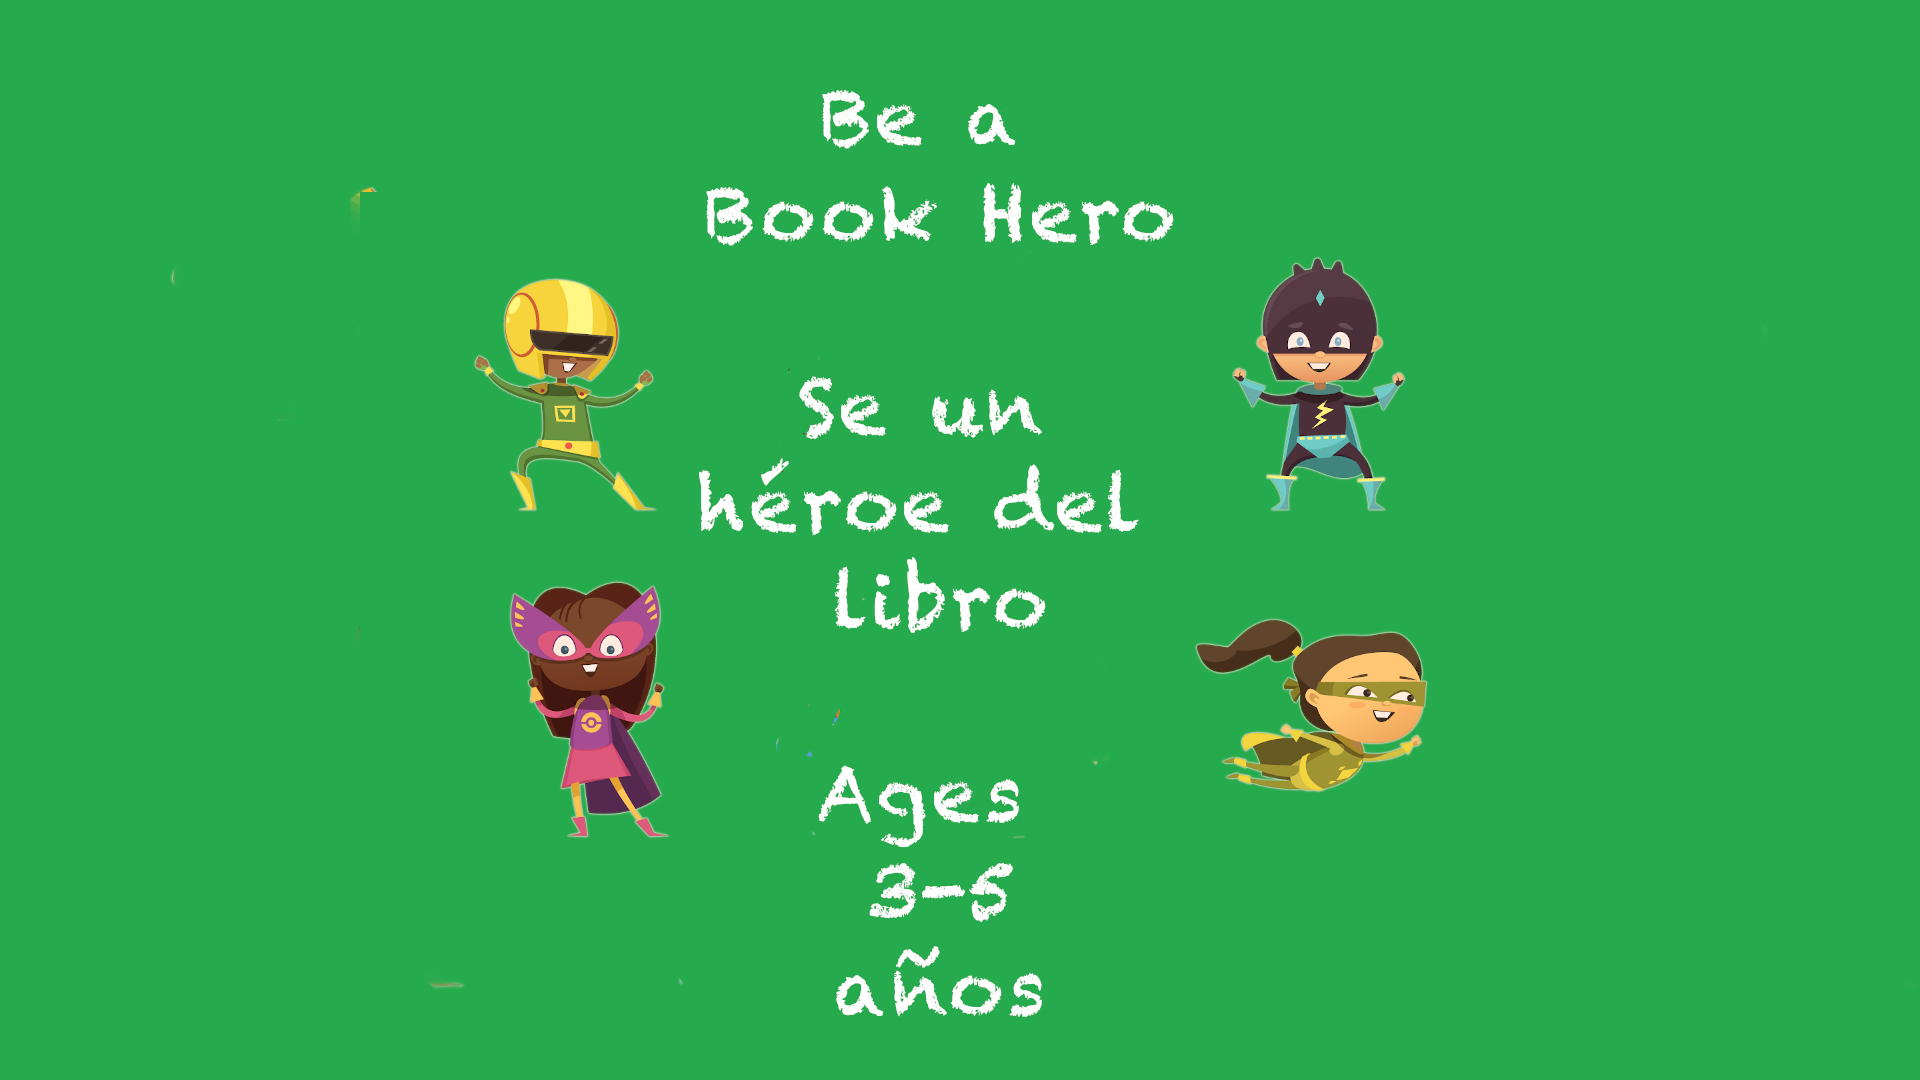 Weekly Themes #13 Be a Book Hero 3-5 year olds